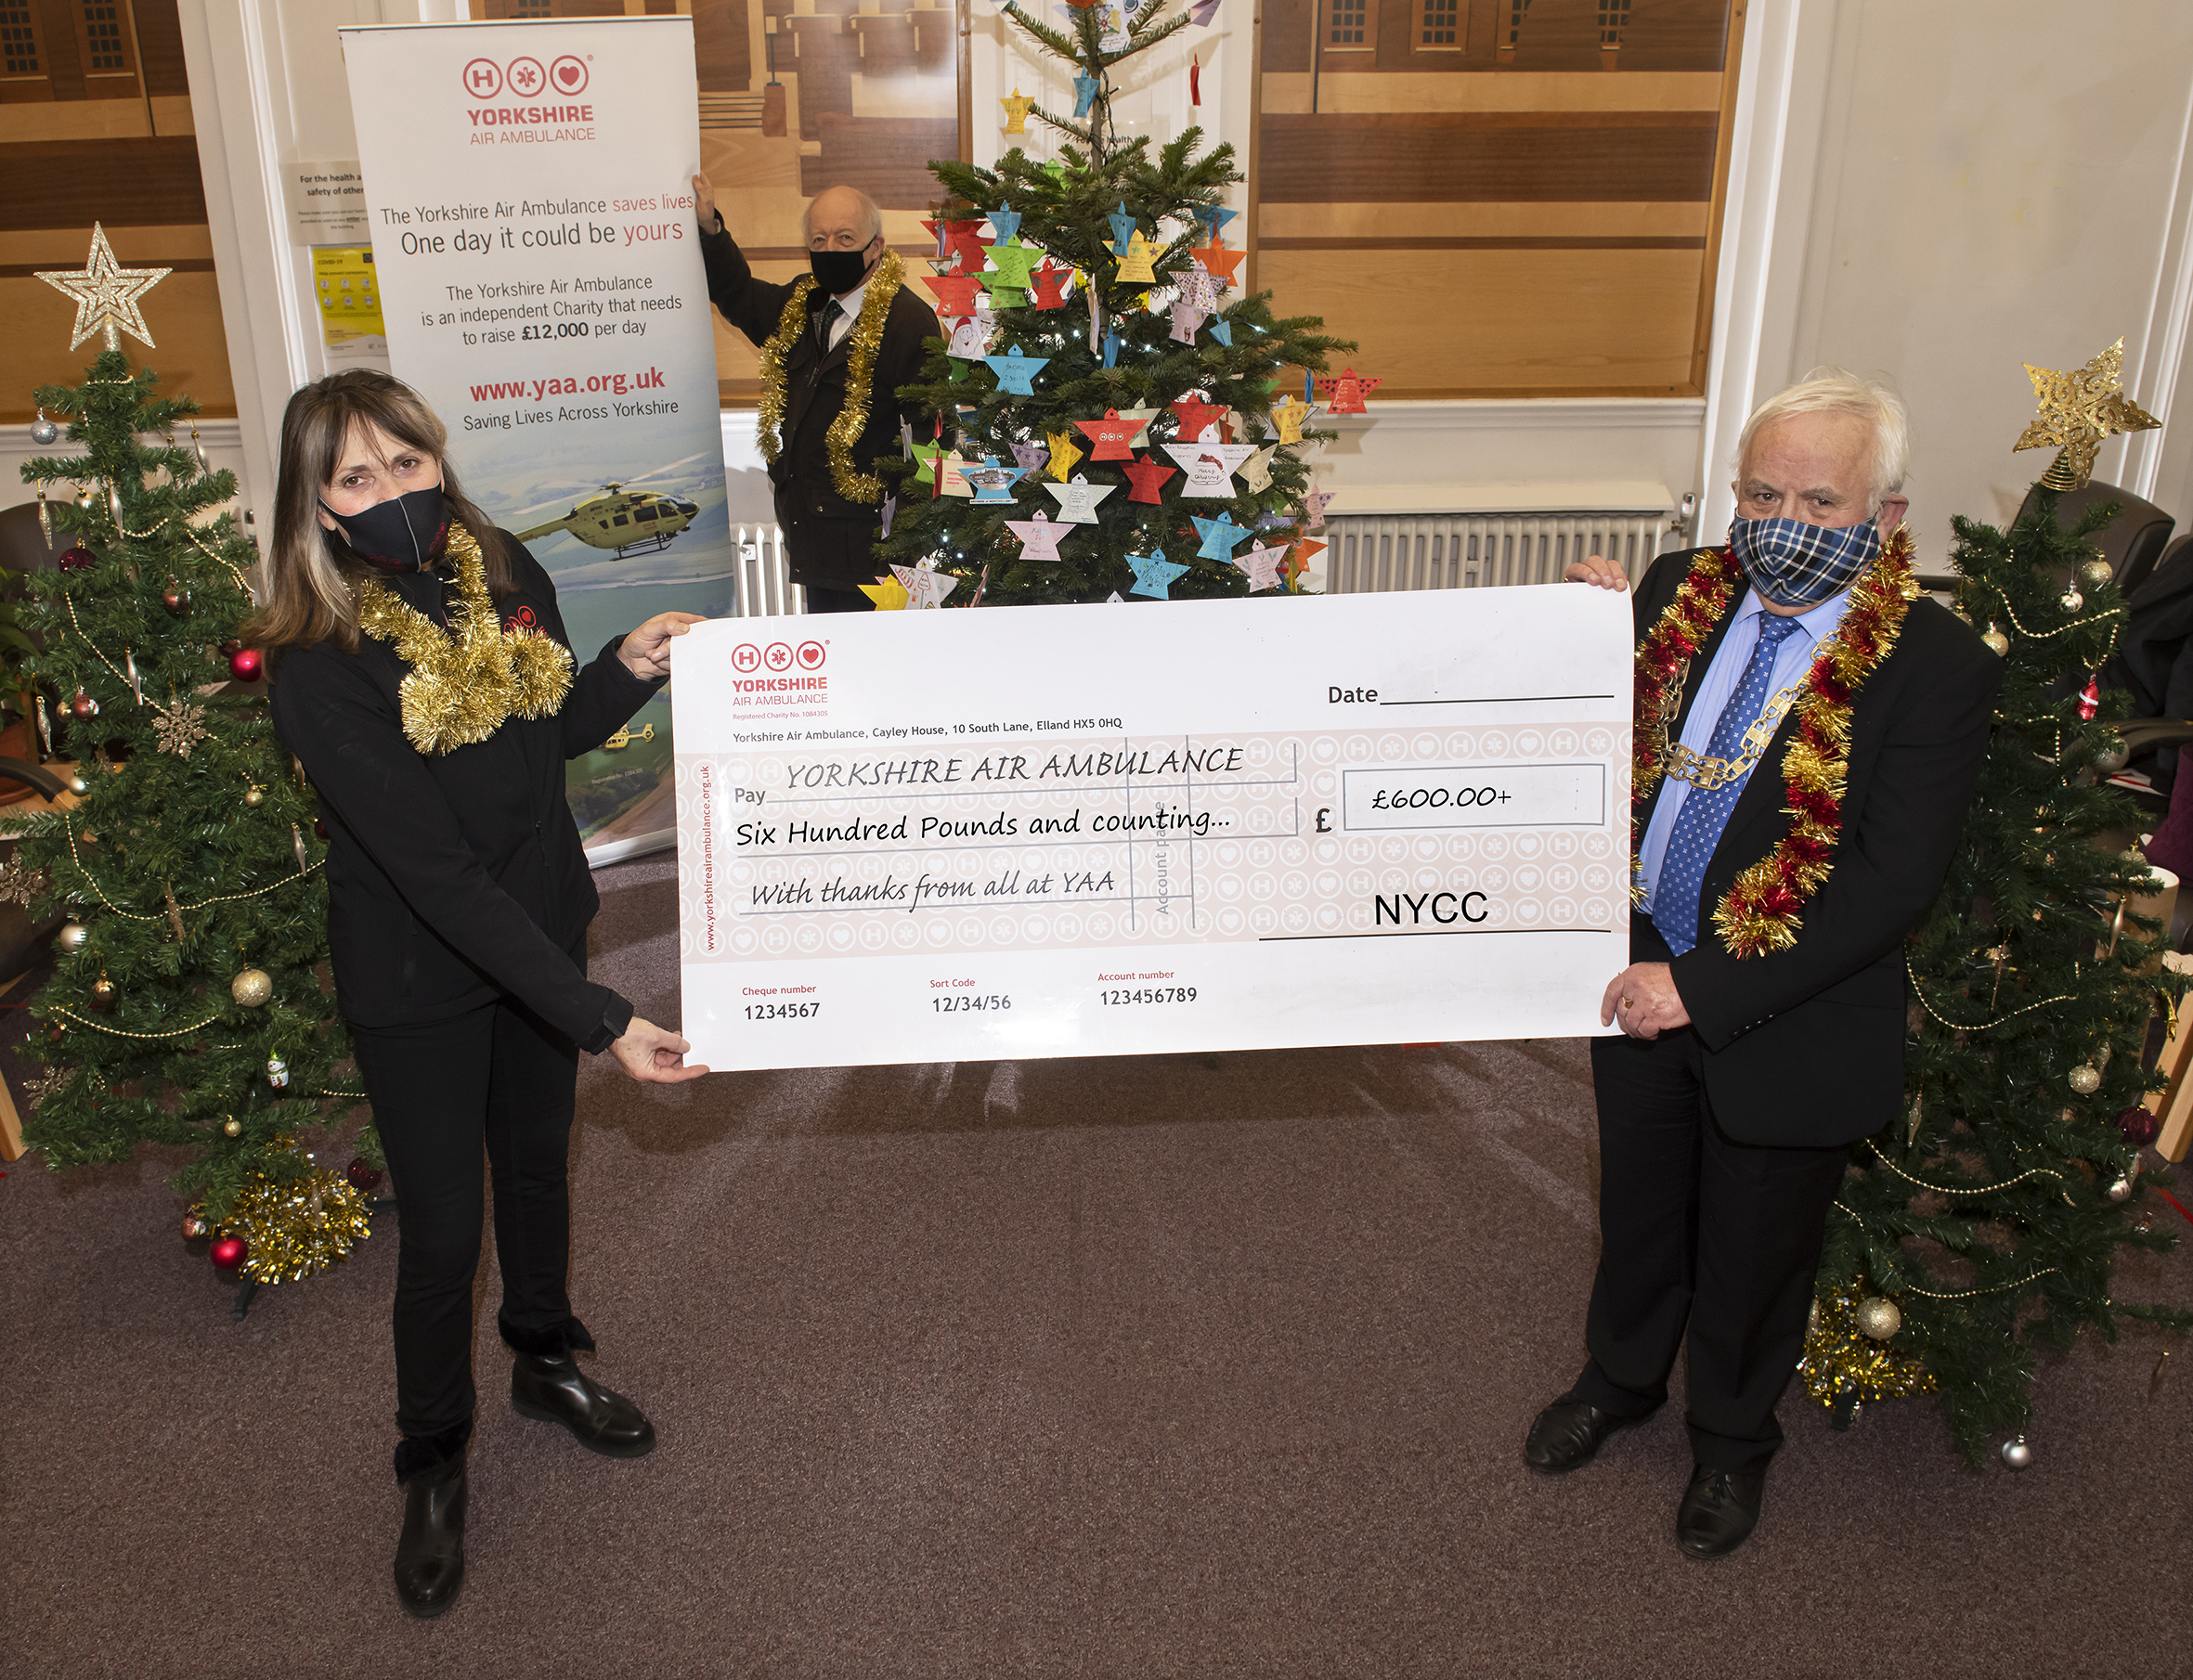 Lin Stead Christmas angels with a cheque